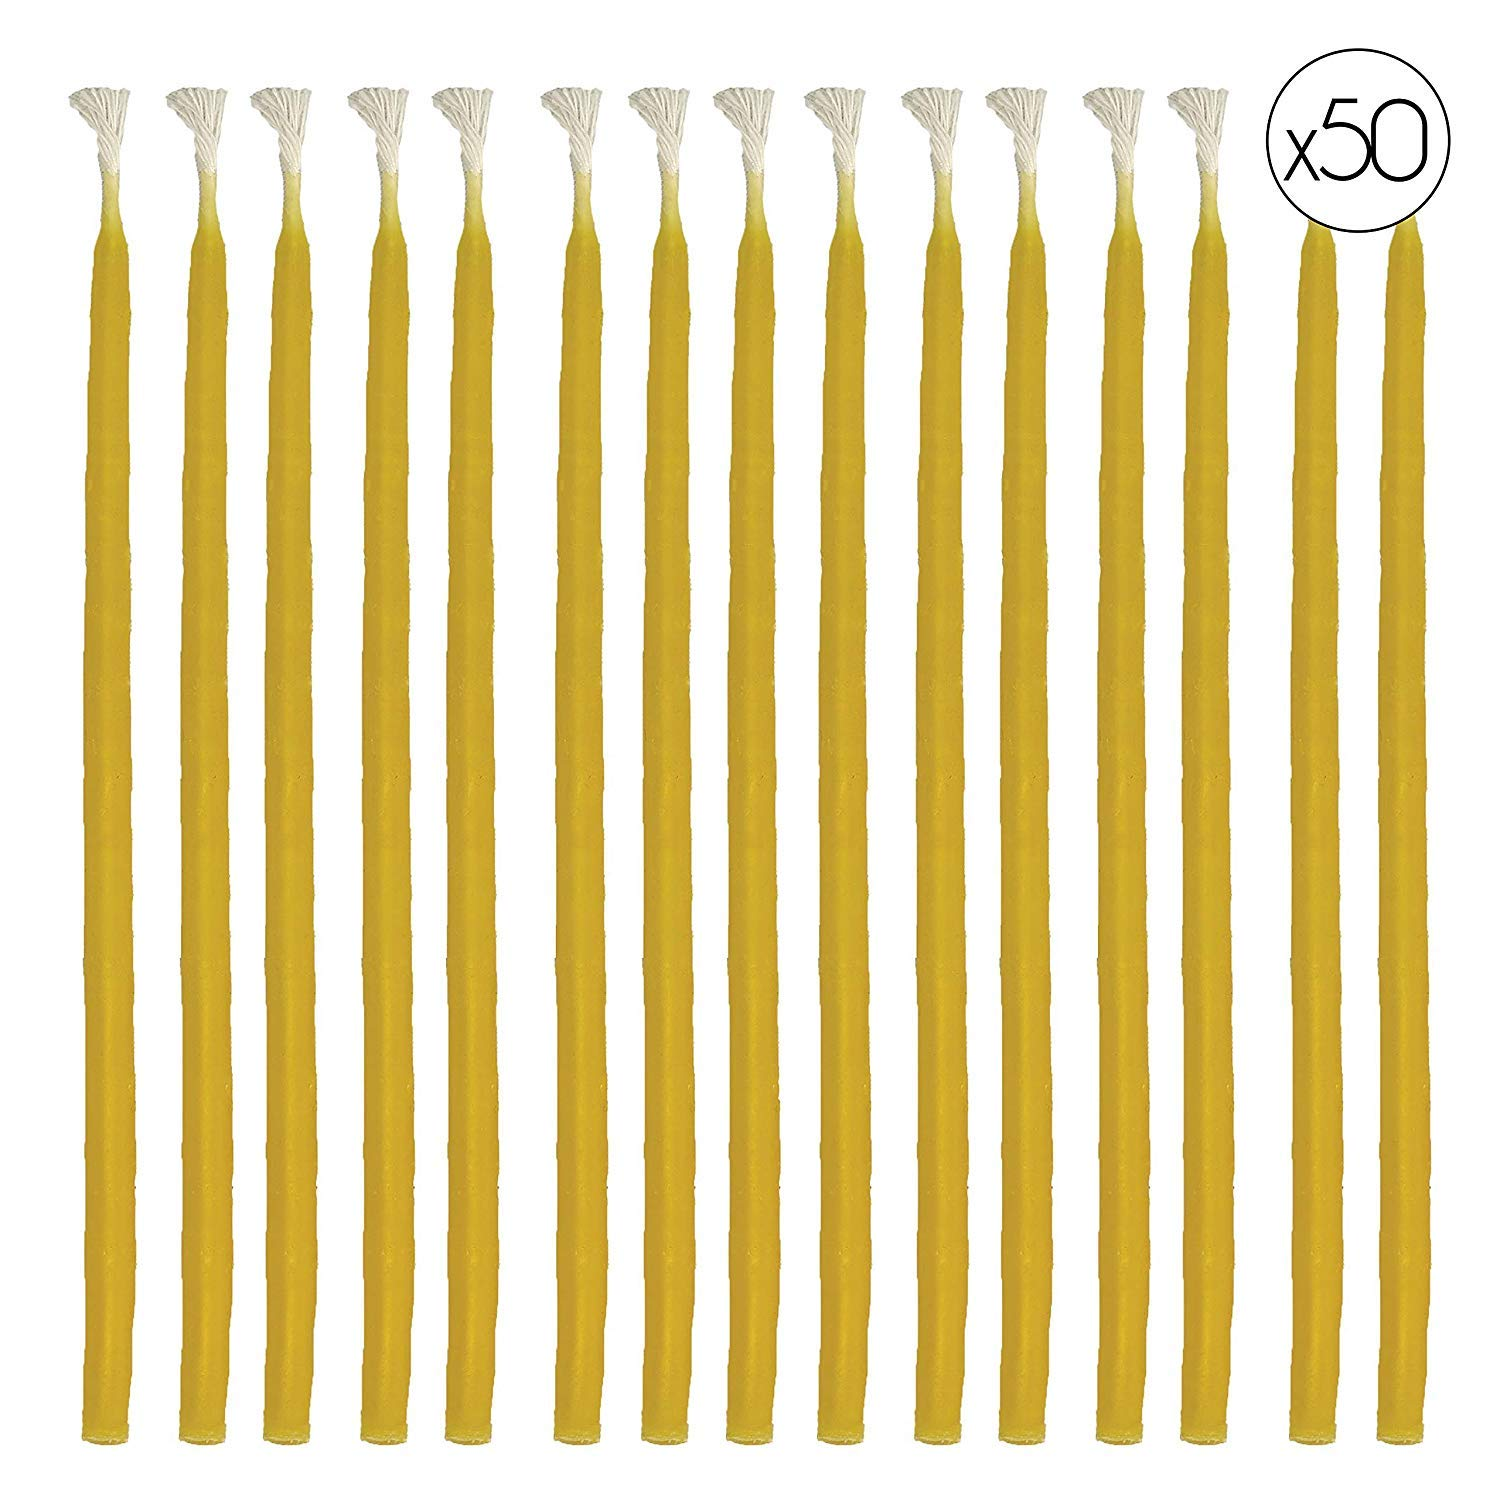 "Hyoola Beeswax Birthday Candles – 50 Pack - Natural Dripless Decorative Candles Long Lasting Burn – Elegant Taper Design, Soothing Scent – 6"" Tall – Handmade in the USA"